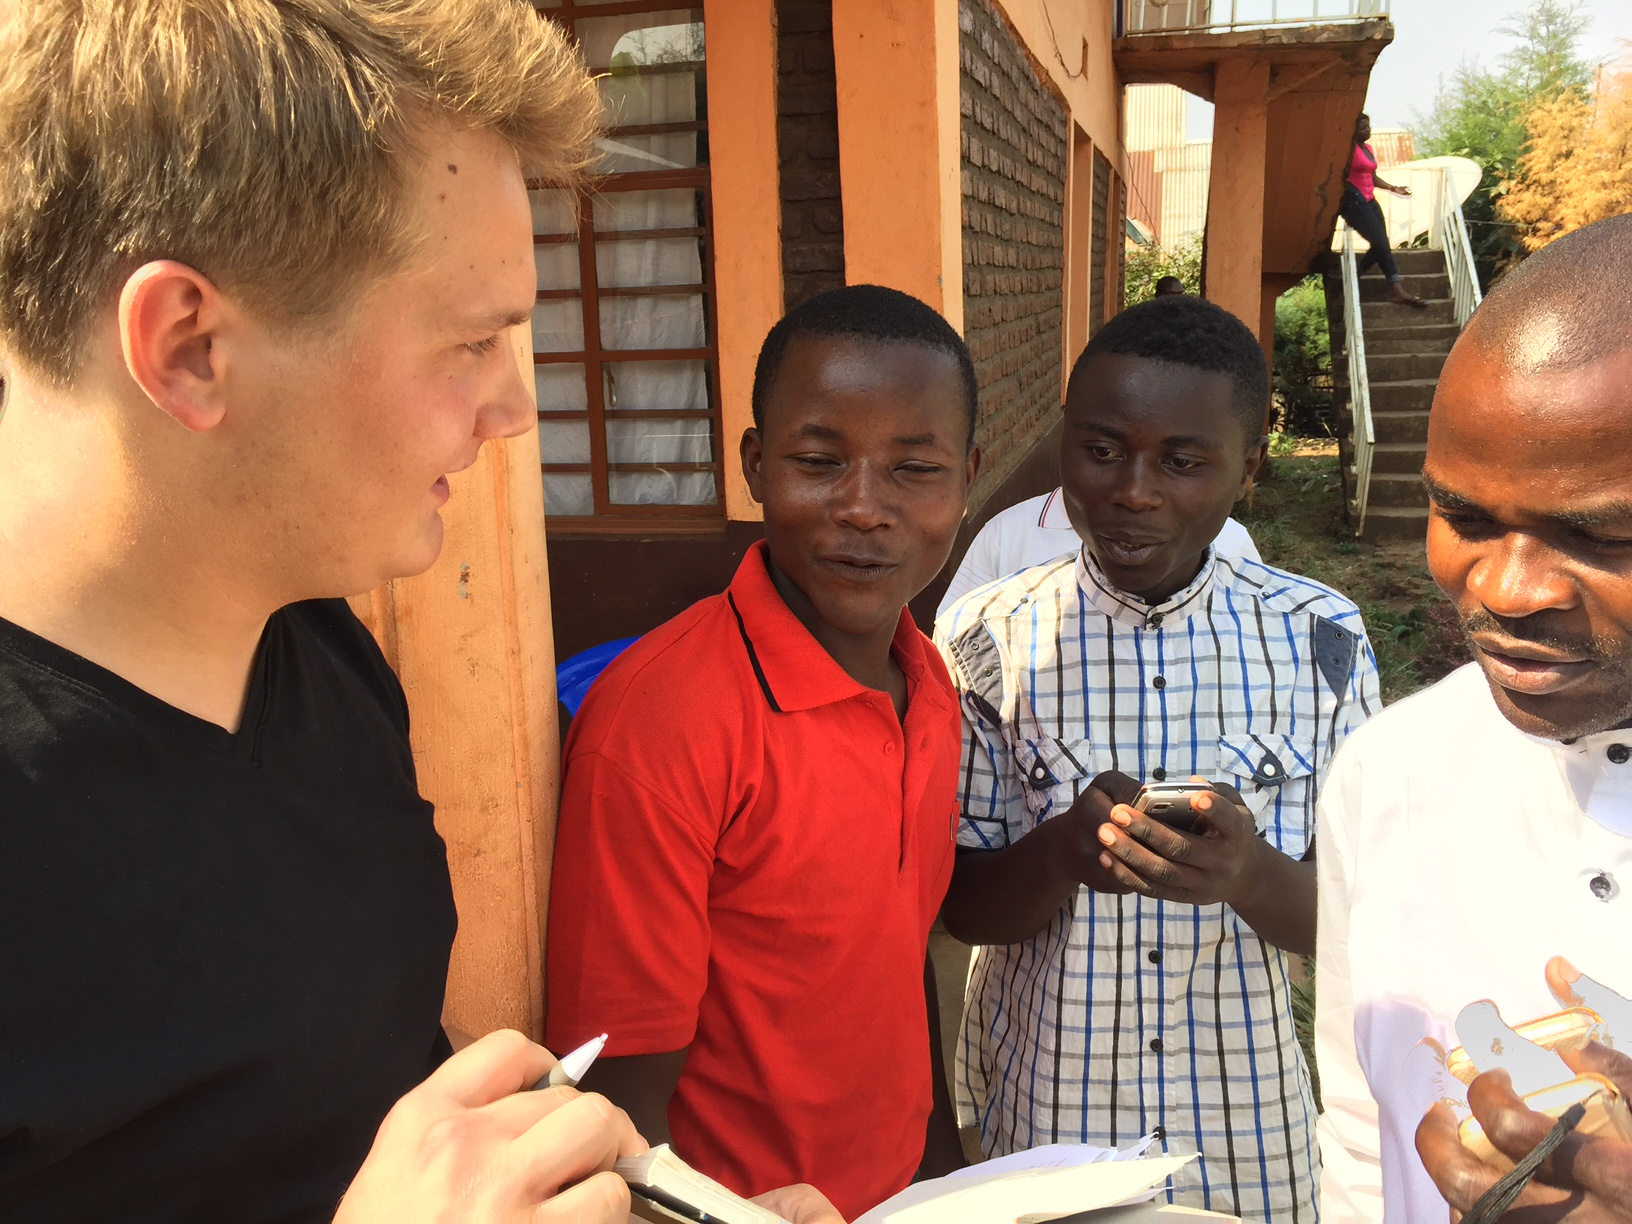 Burton talking with Congolese youth